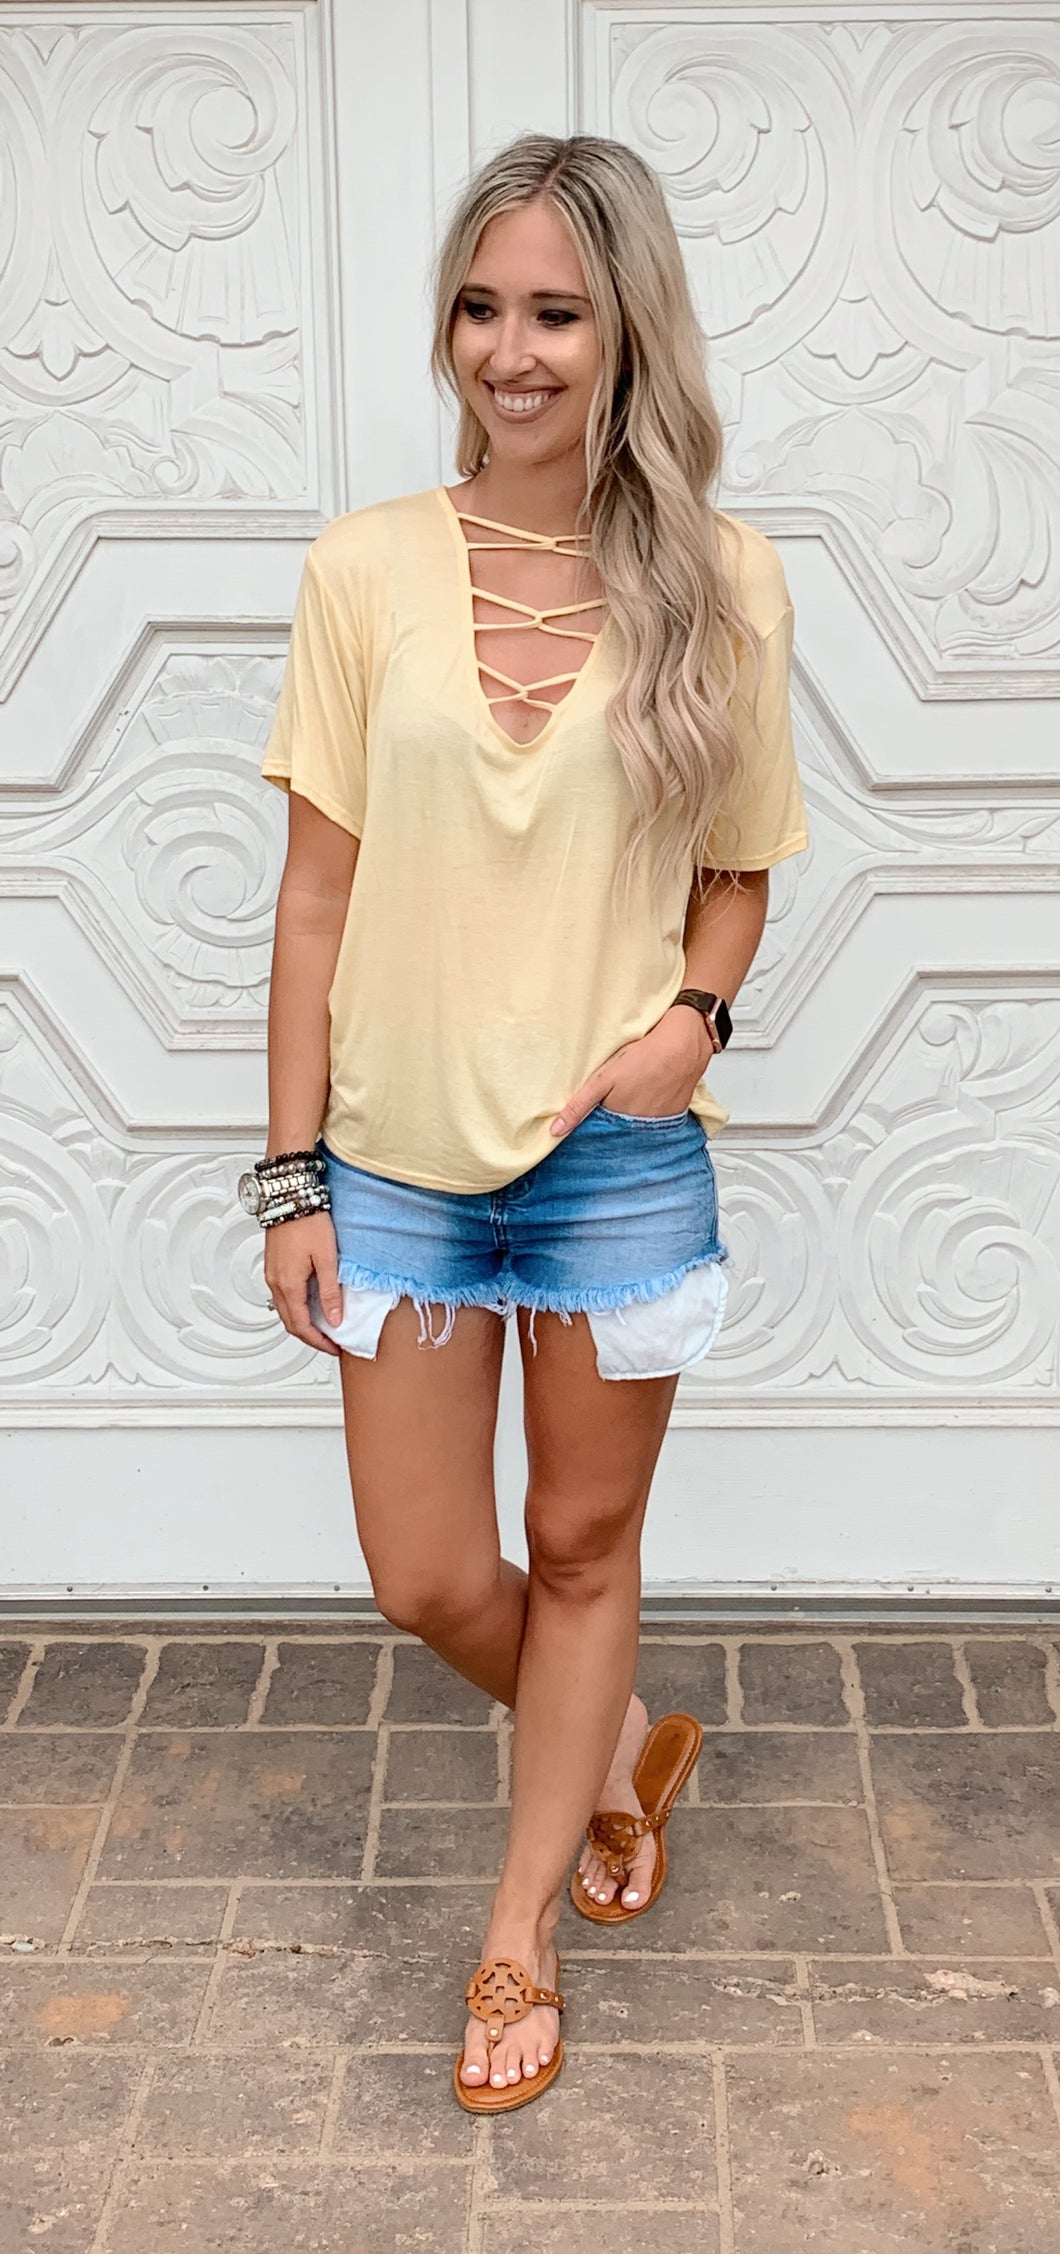 Lace Up Vneck Tshirt